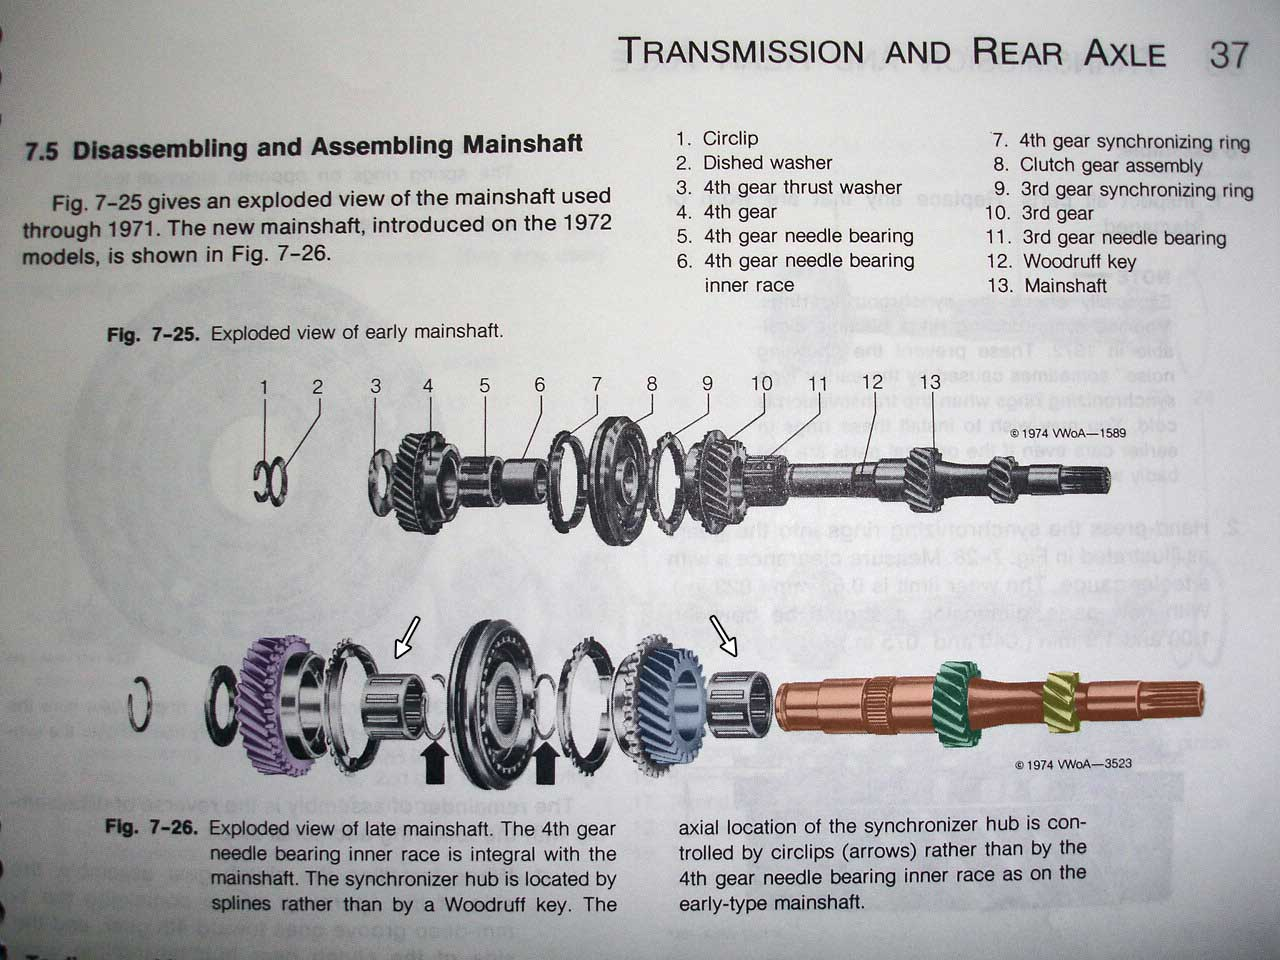 Vw Transmission Diagram Another Blog About Wiring Sitex Transducer Colors Transaxle Rh Ratwell Com T4 020